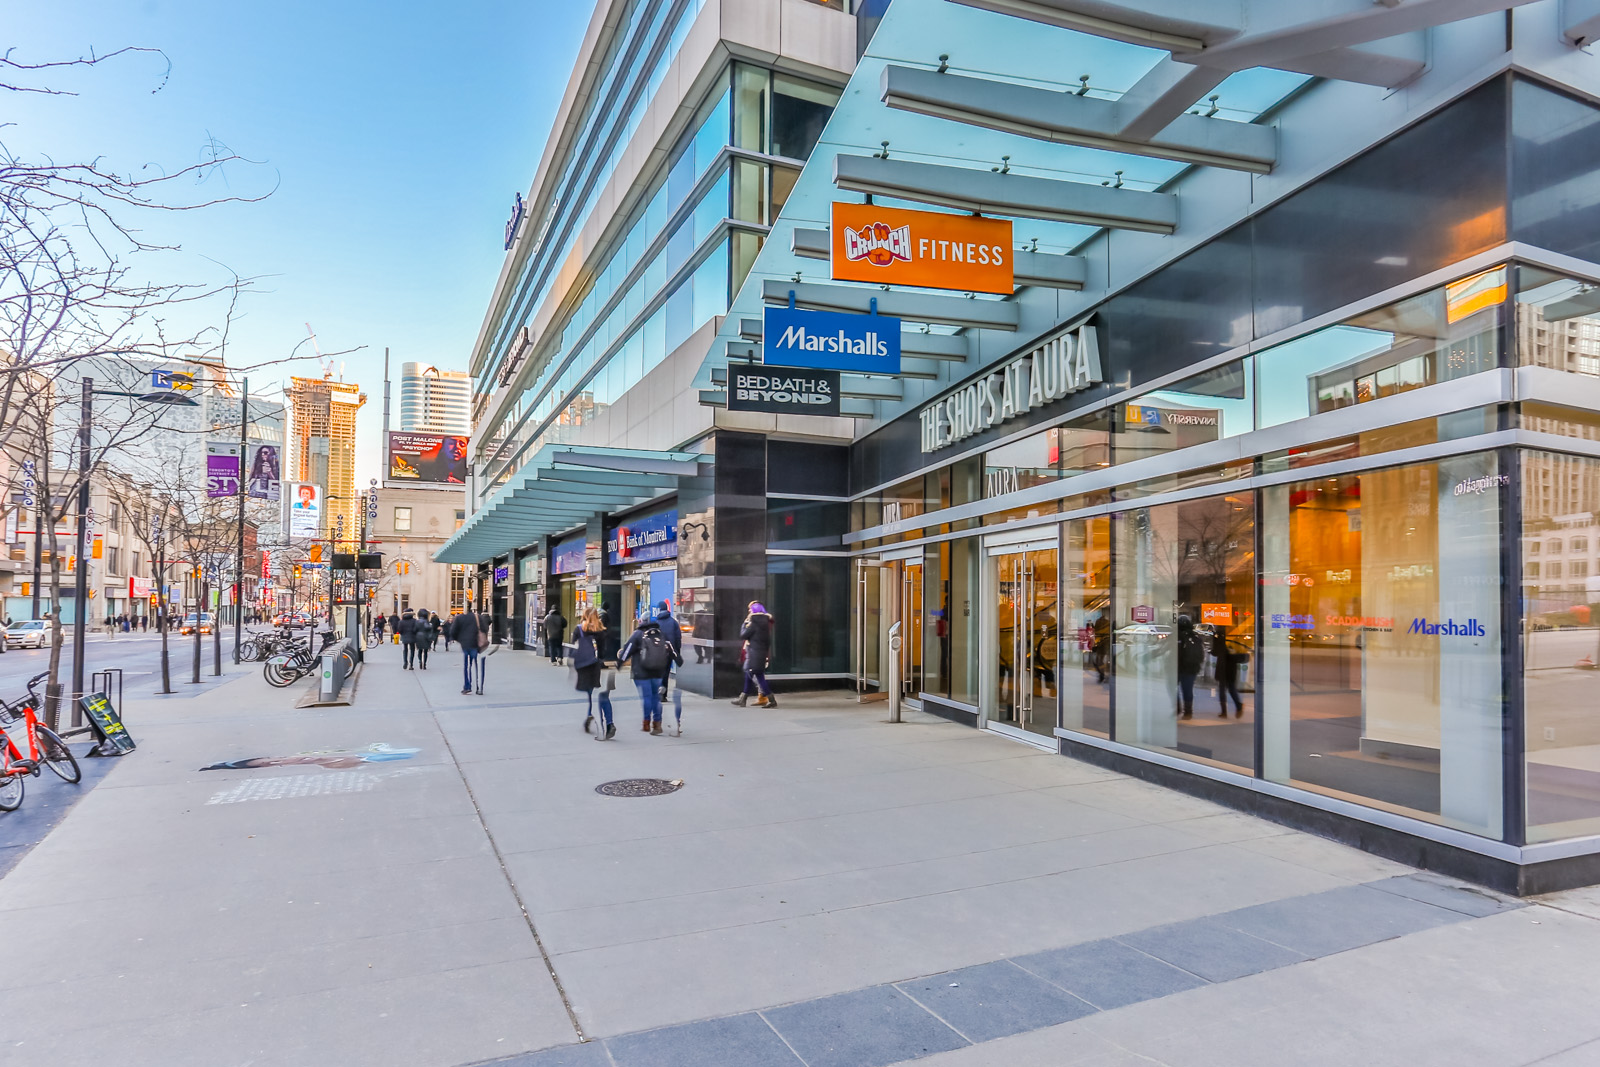 Shops and pedestrians in Toronto.